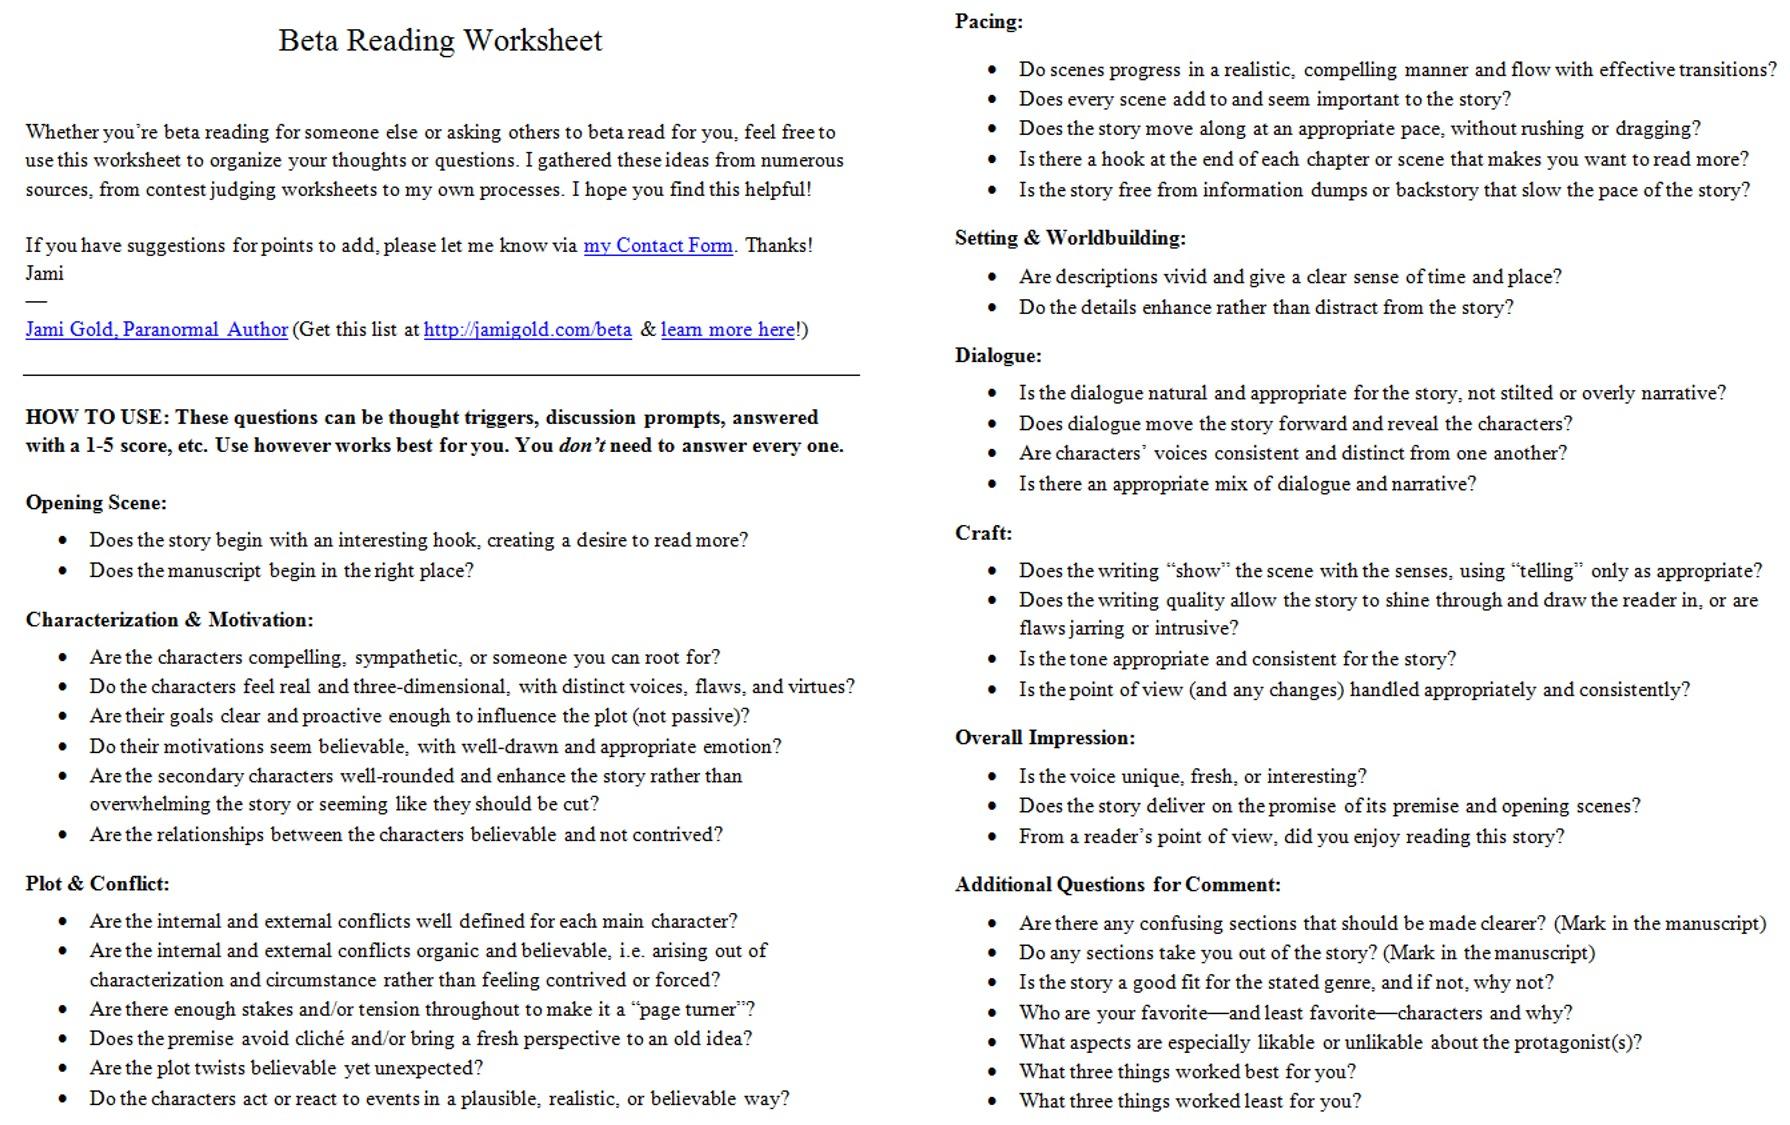 Proatmealus  Fascinating Worksheets For Writers  Jami Gold Paranormal Author With Goodlooking Screen Shot Of The Twopage Beta Reading Worksheet With Delectable Solid Shape Worksheets Also Letter N Tracing Worksheets In Addition Graphing Worksheets For St Grade And Reflection Math Worksheet As Well As Addition Decimals Worksheets Additionally Vectors And Scalars Worksheet From Jamigoldcom With Proatmealus  Goodlooking Worksheets For Writers  Jami Gold Paranormal Author With Delectable Screen Shot Of The Twopage Beta Reading Worksheet And Fascinating Solid Shape Worksheets Also Letter N Tracing Worksheets In Addition Graphing Worksheets For St Grade From Jamigoldcom